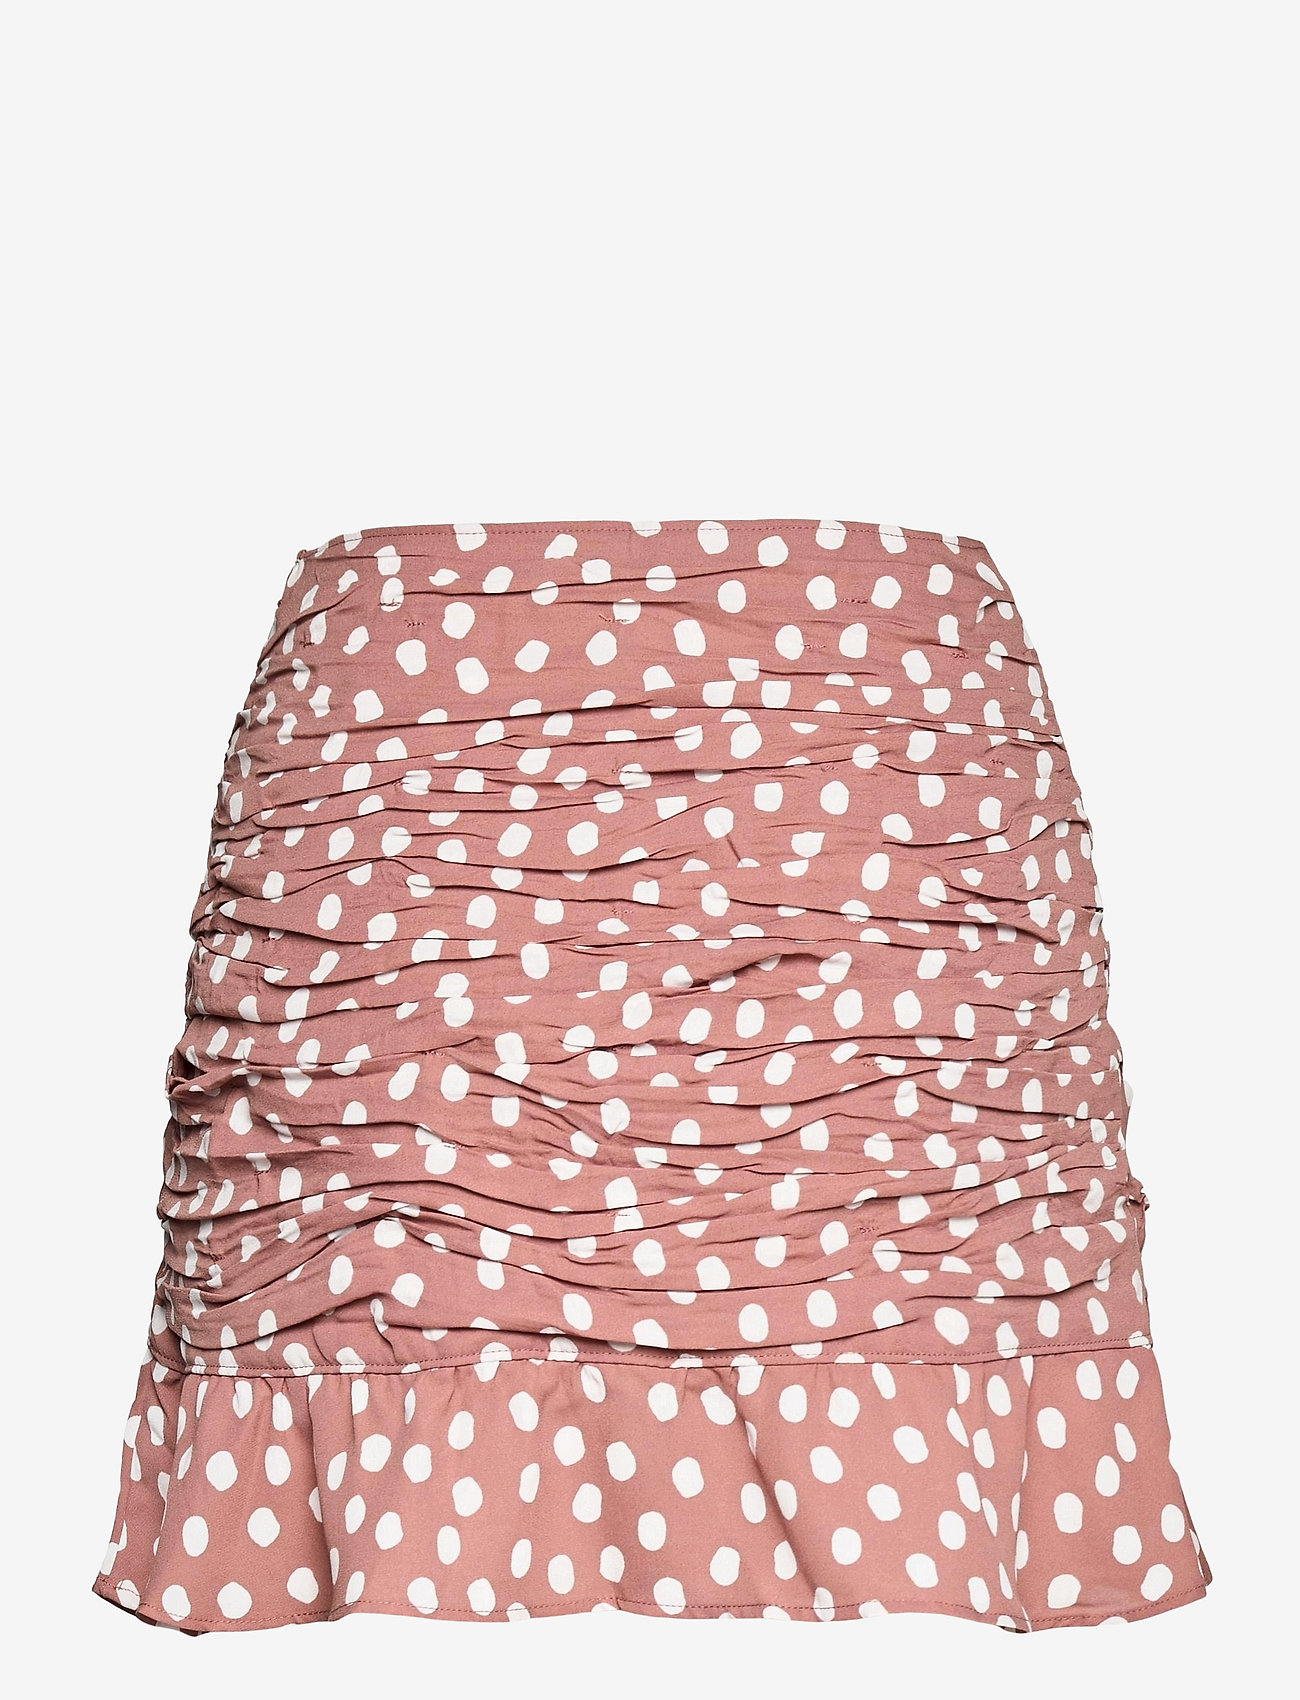 Abercrombie & Fitch - ANF WOMENS SKIRTS - korta kjolar - brown with white dots - 1